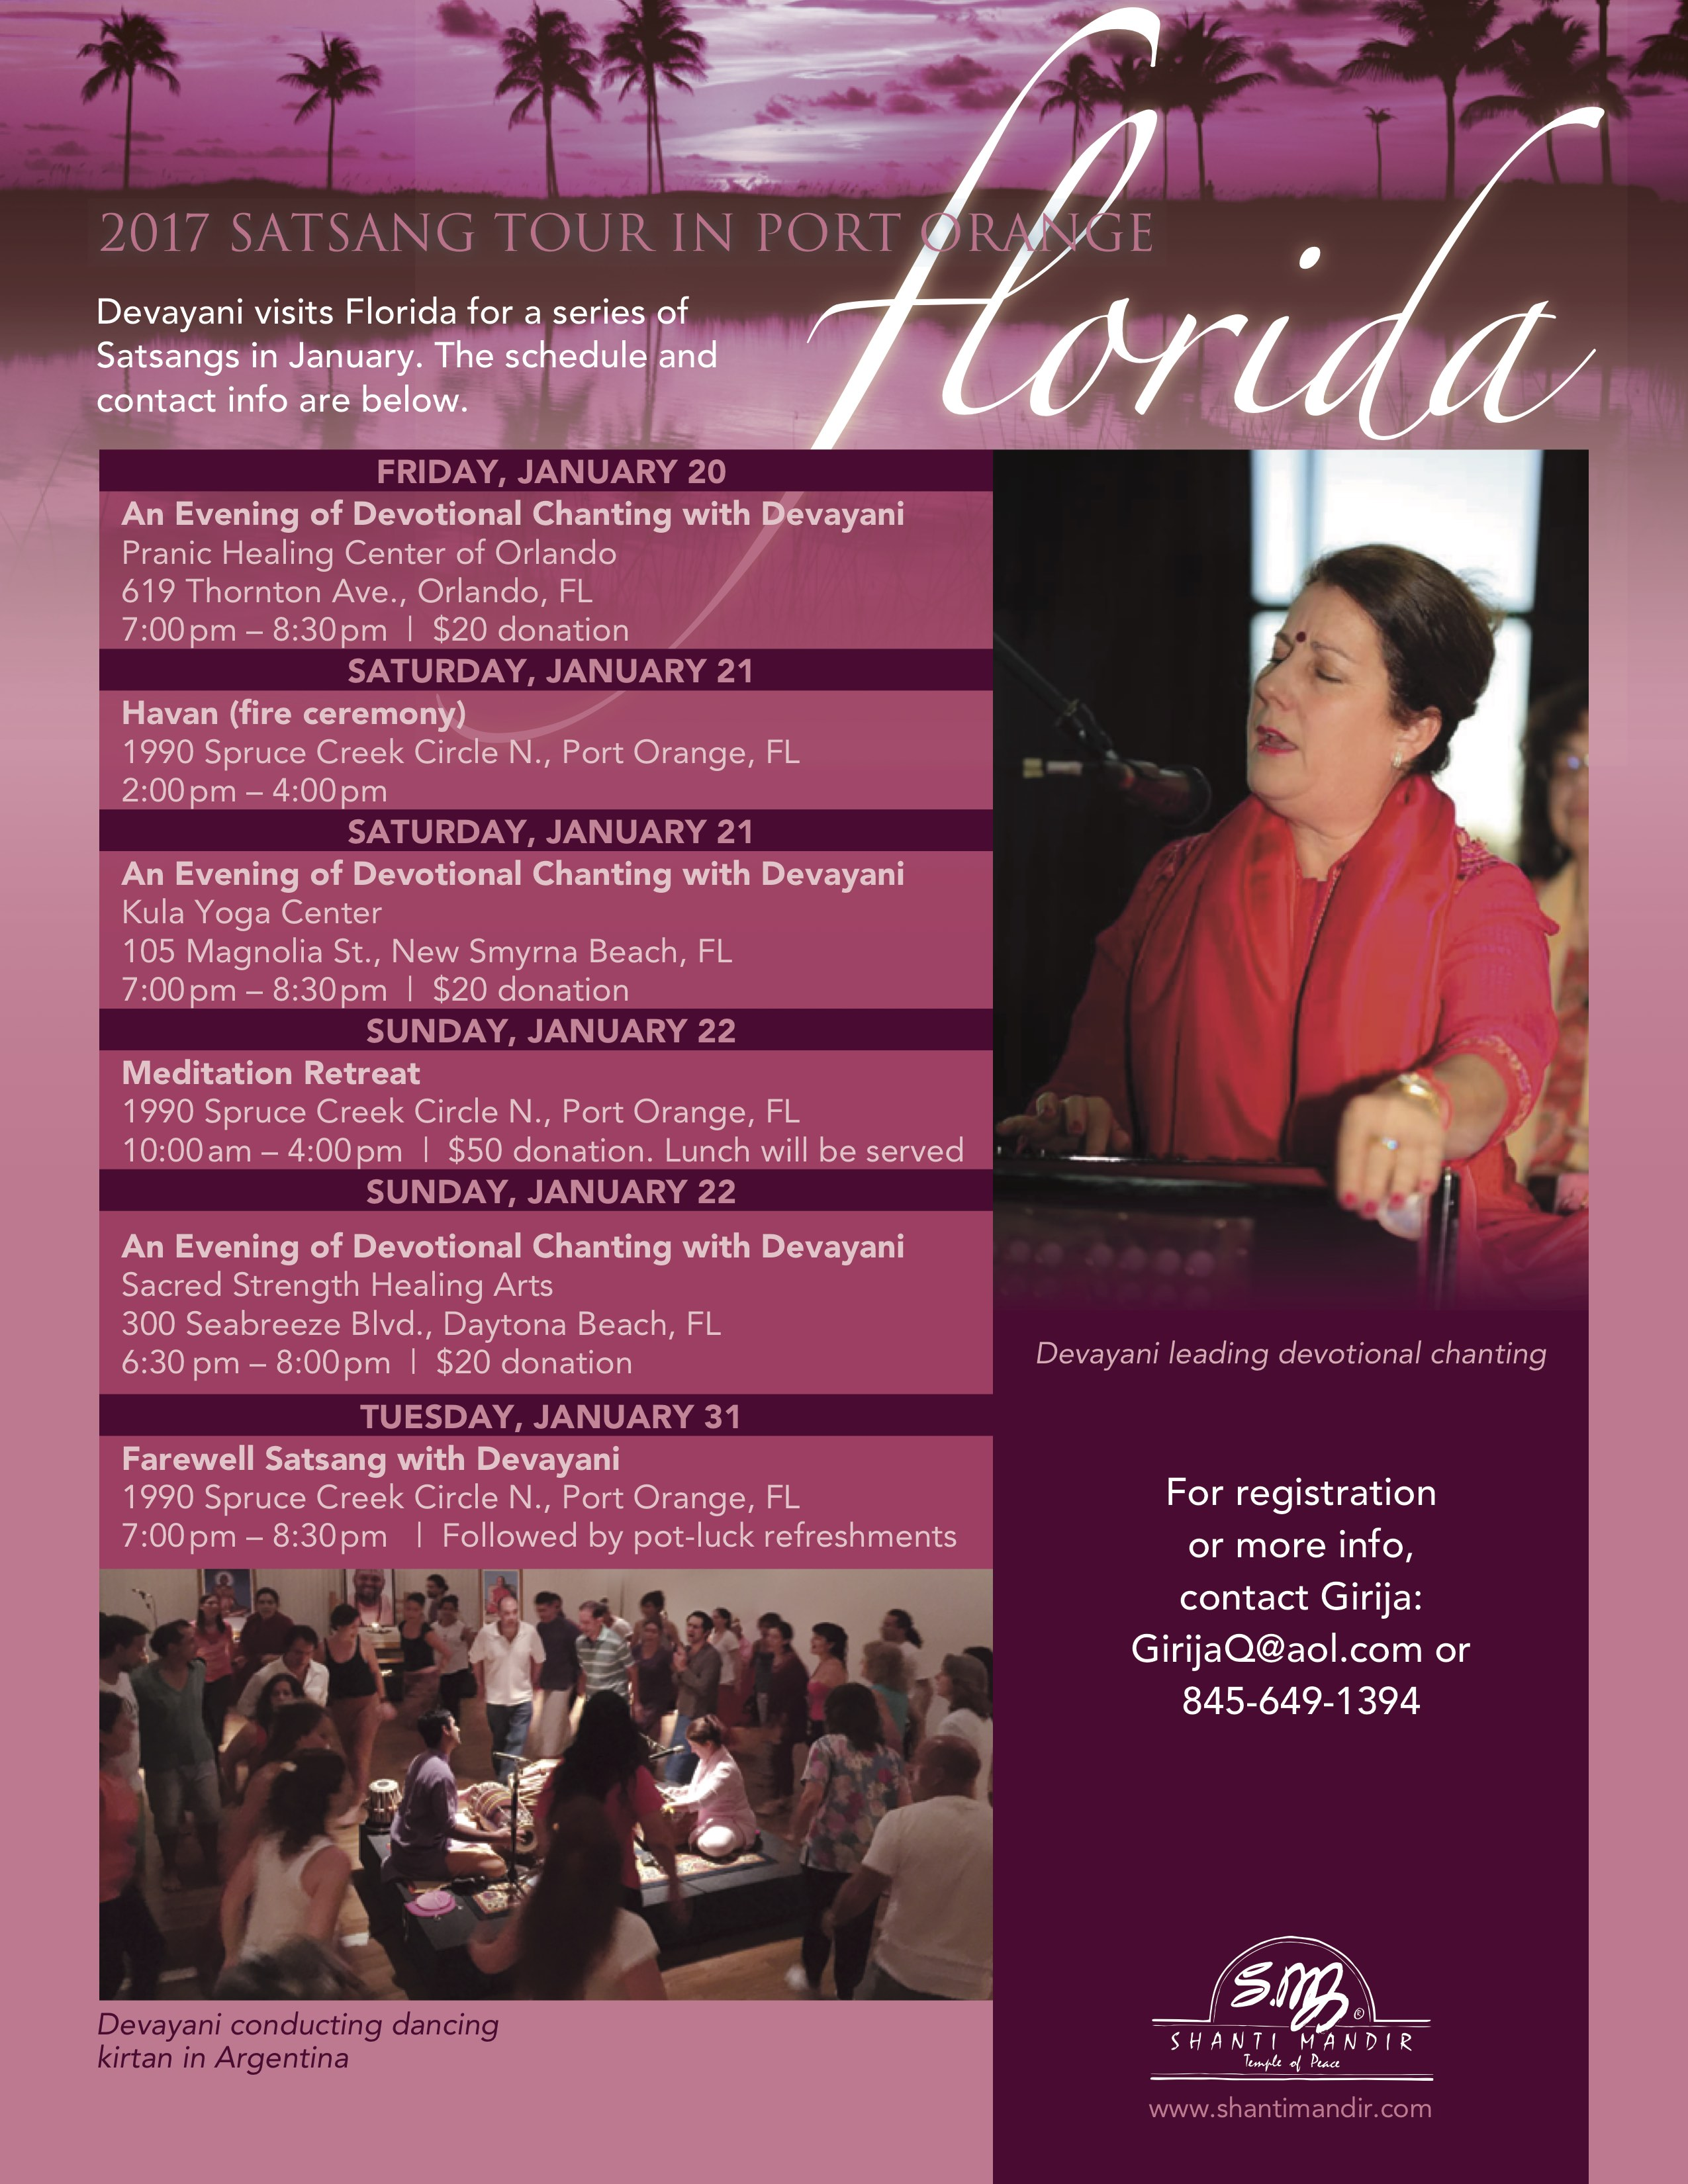 florida-satsang-tour-port-orange-flyer-2017